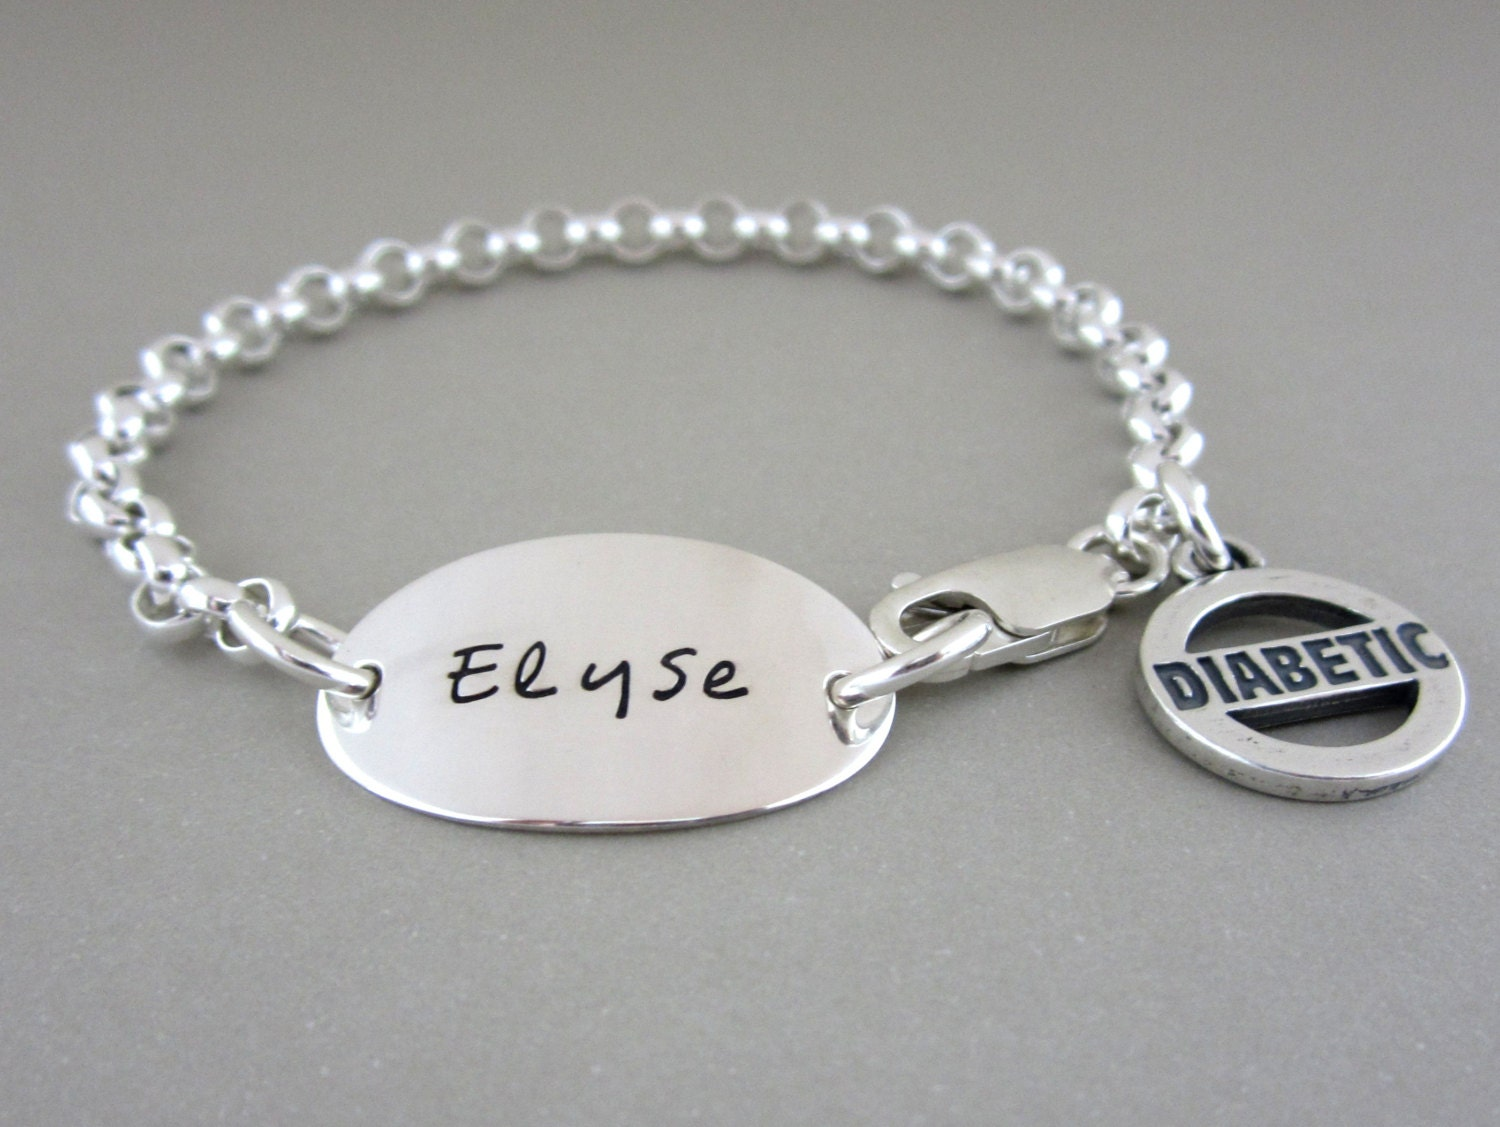 jewelry sterling silver bracelet id alert by